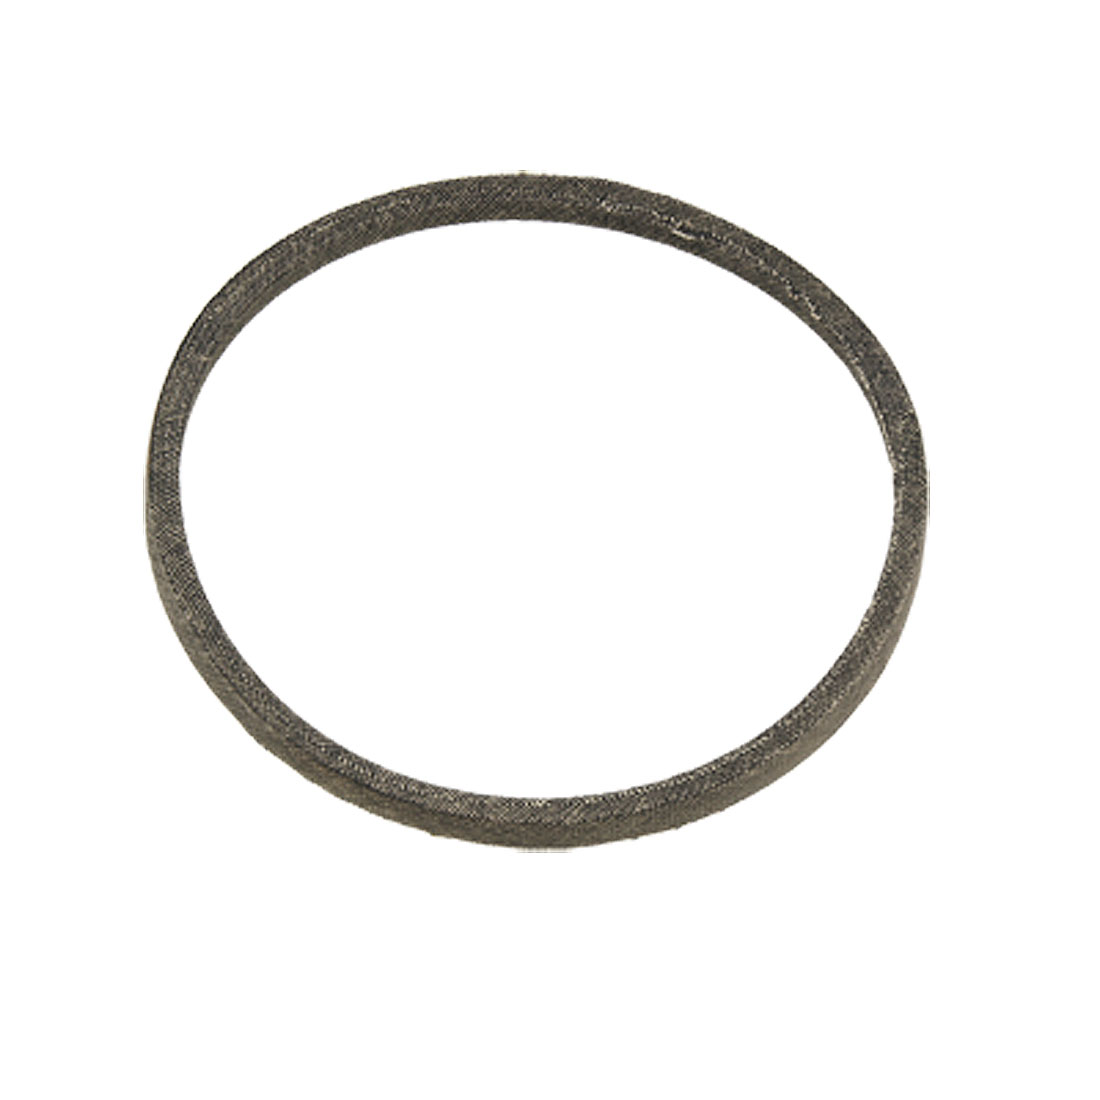 "Washing Machine Washer Replacement 420mm 16 5/8"" Inner Girth V Type Belt"